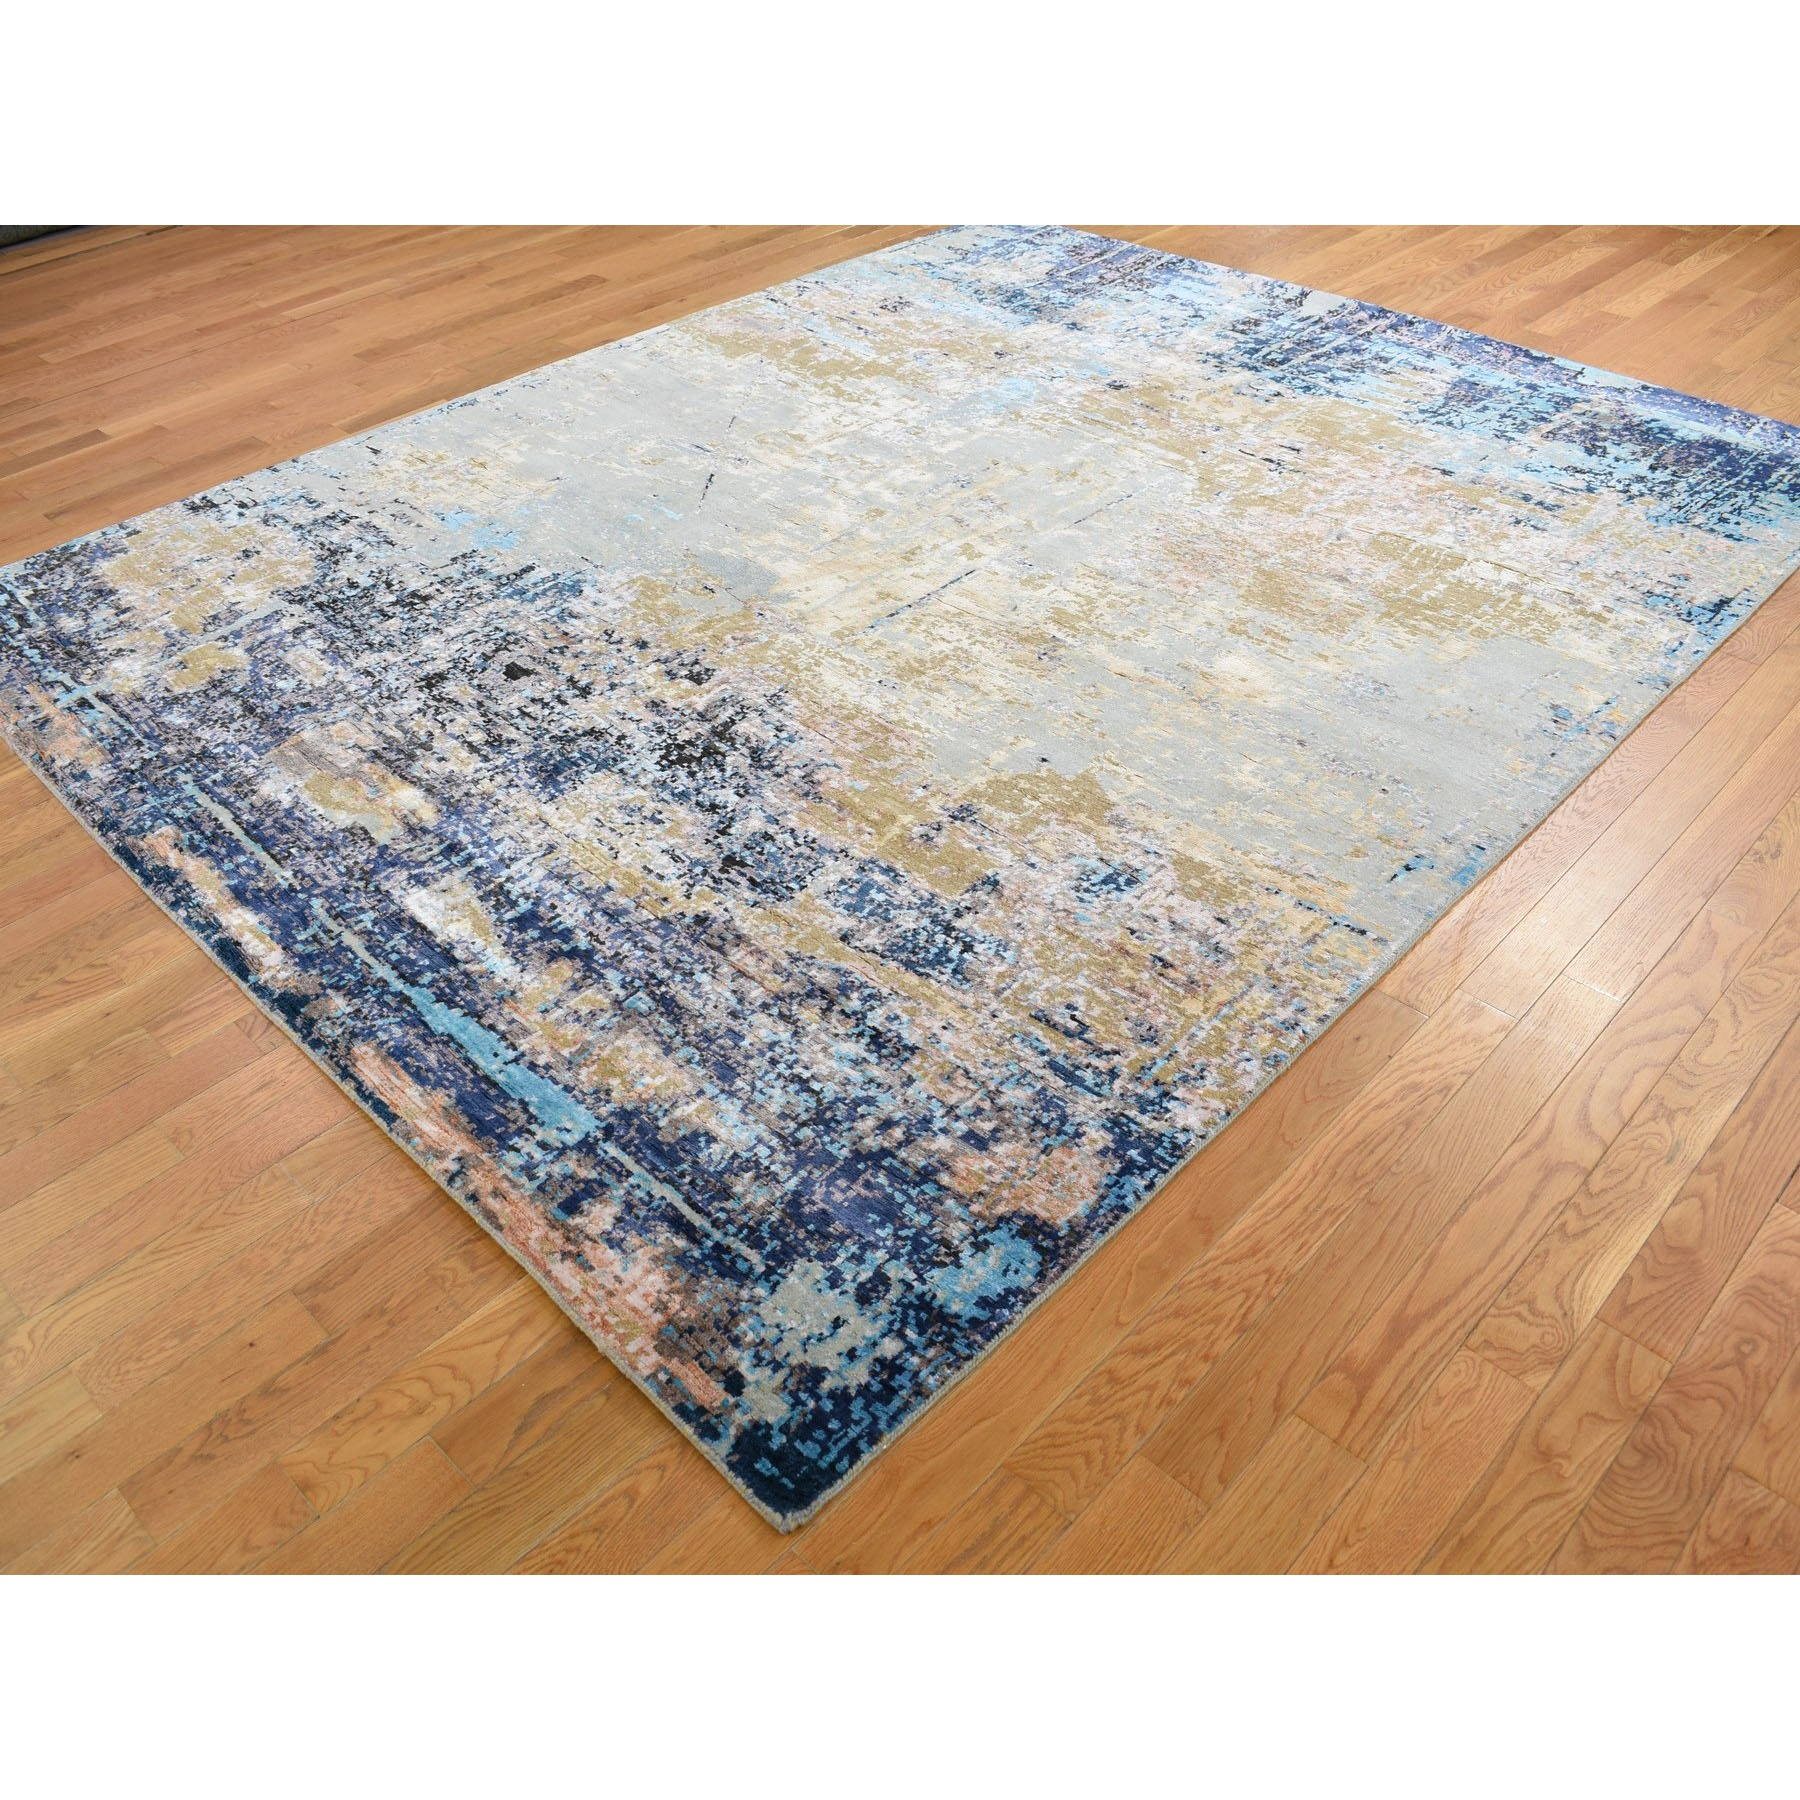 8-1 x10- Wool and Silk Abstract Design Hand Knotted Oriental Rug